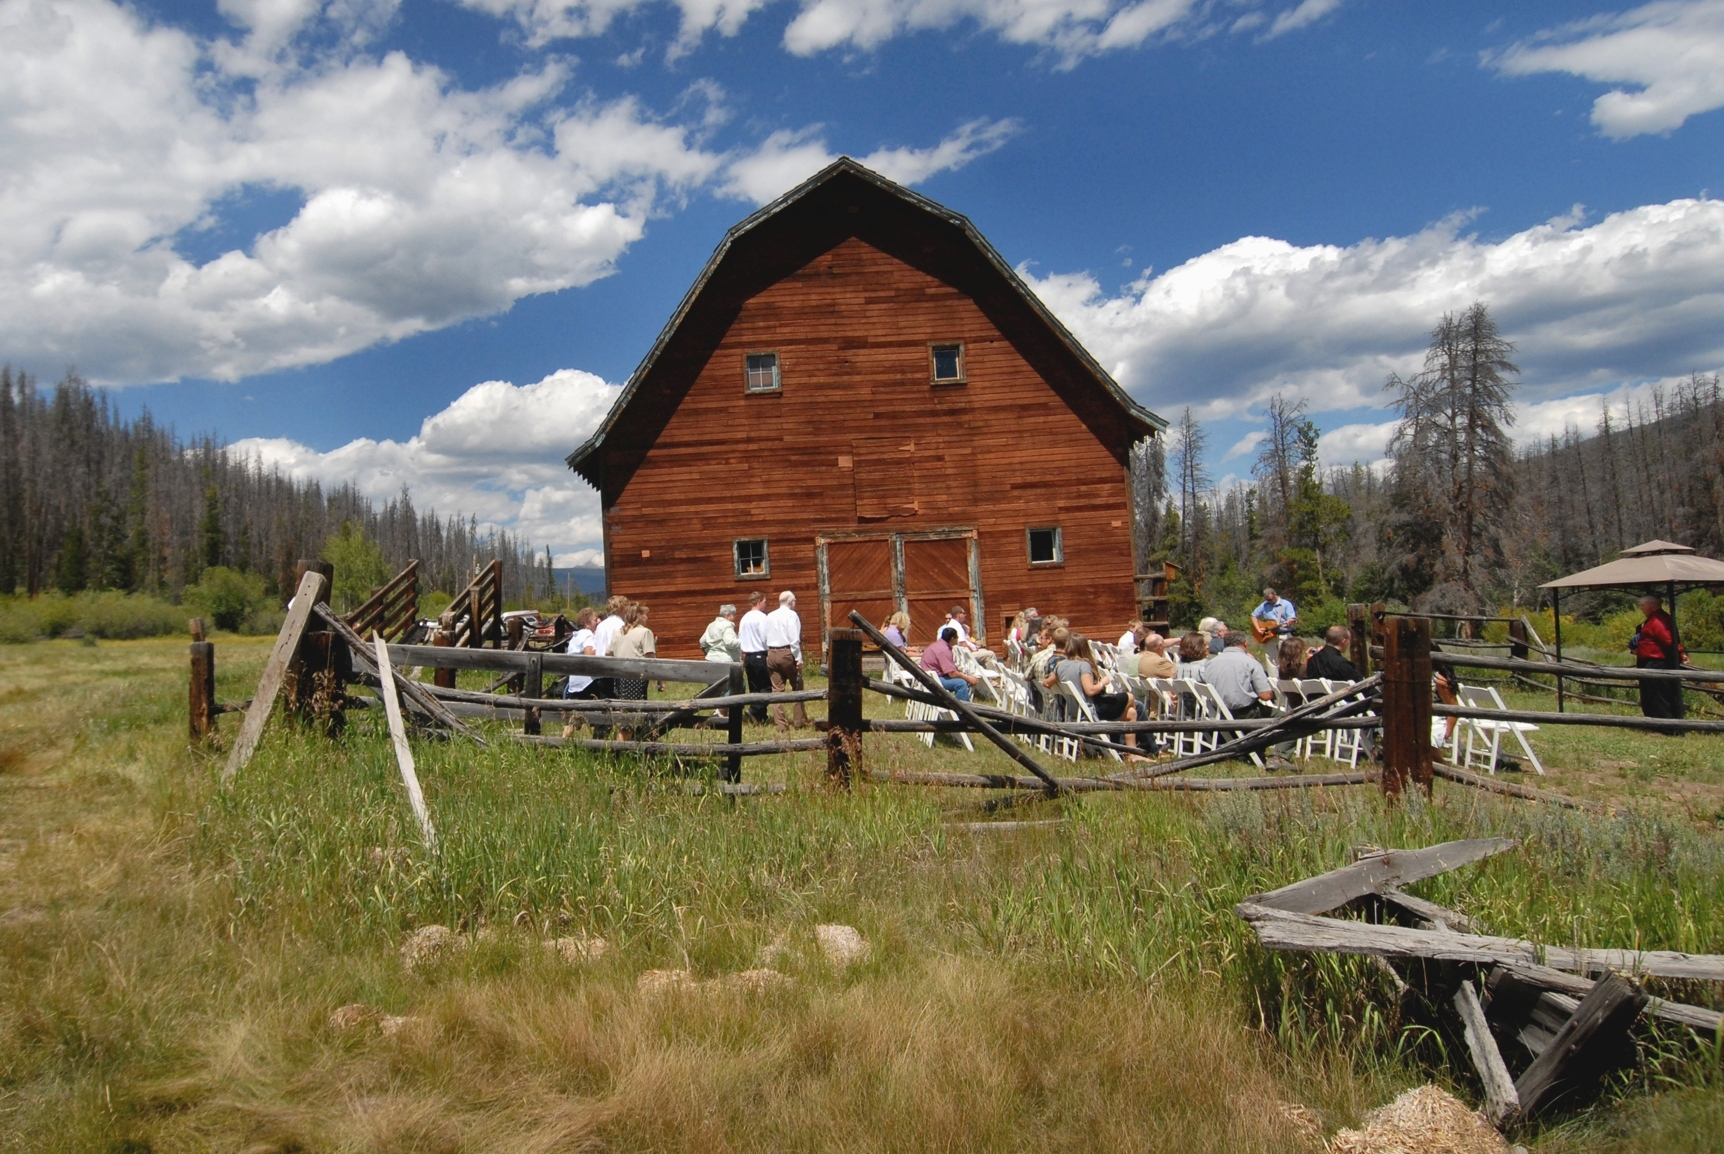 Large brown wooden barn with rows of seats in front filled with wedding goers in the forest.